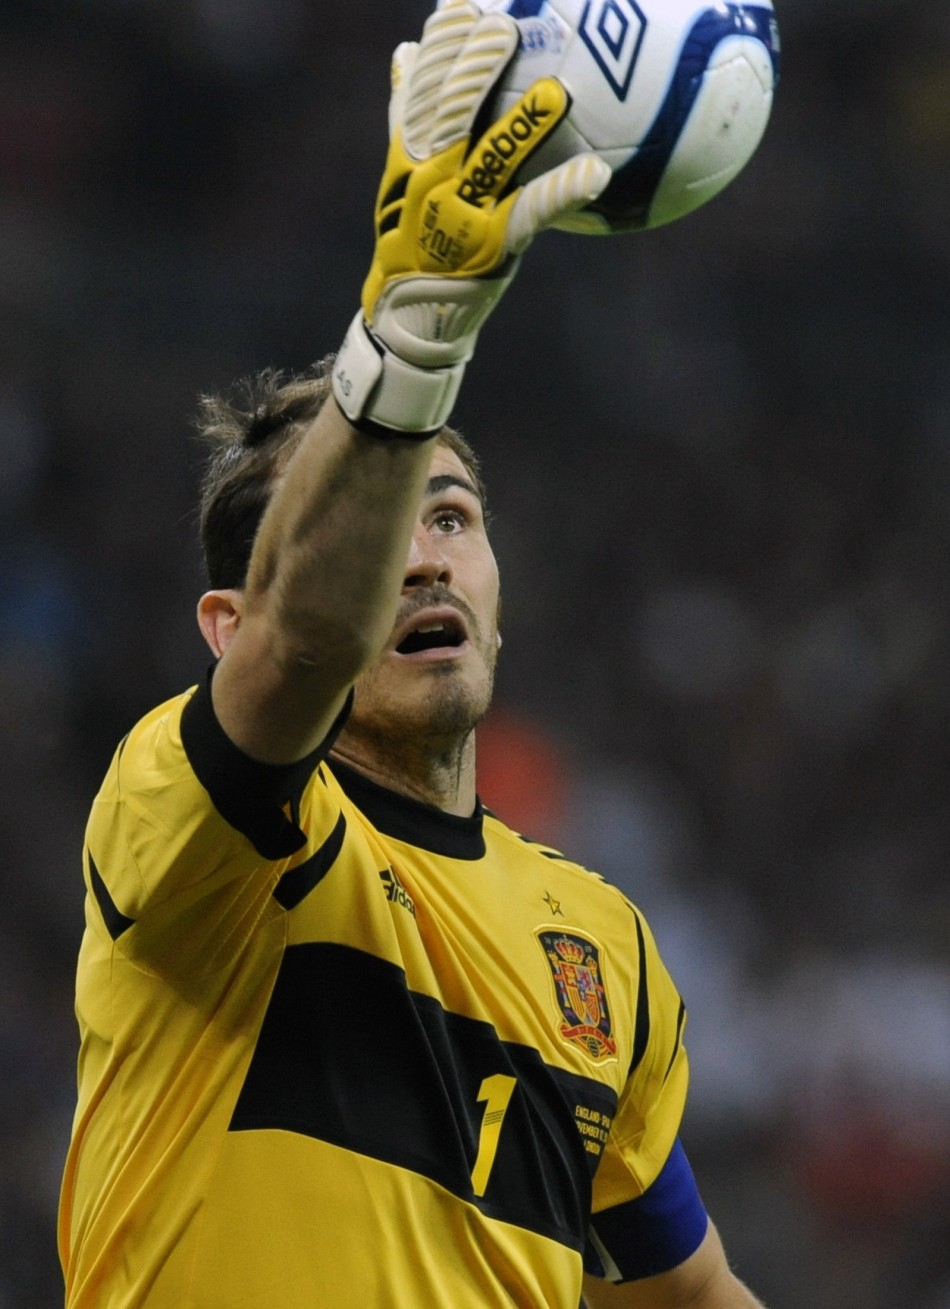 Spain's Casillas catches a ball before his international friendly soccer match against England at Wembley Stadium in London